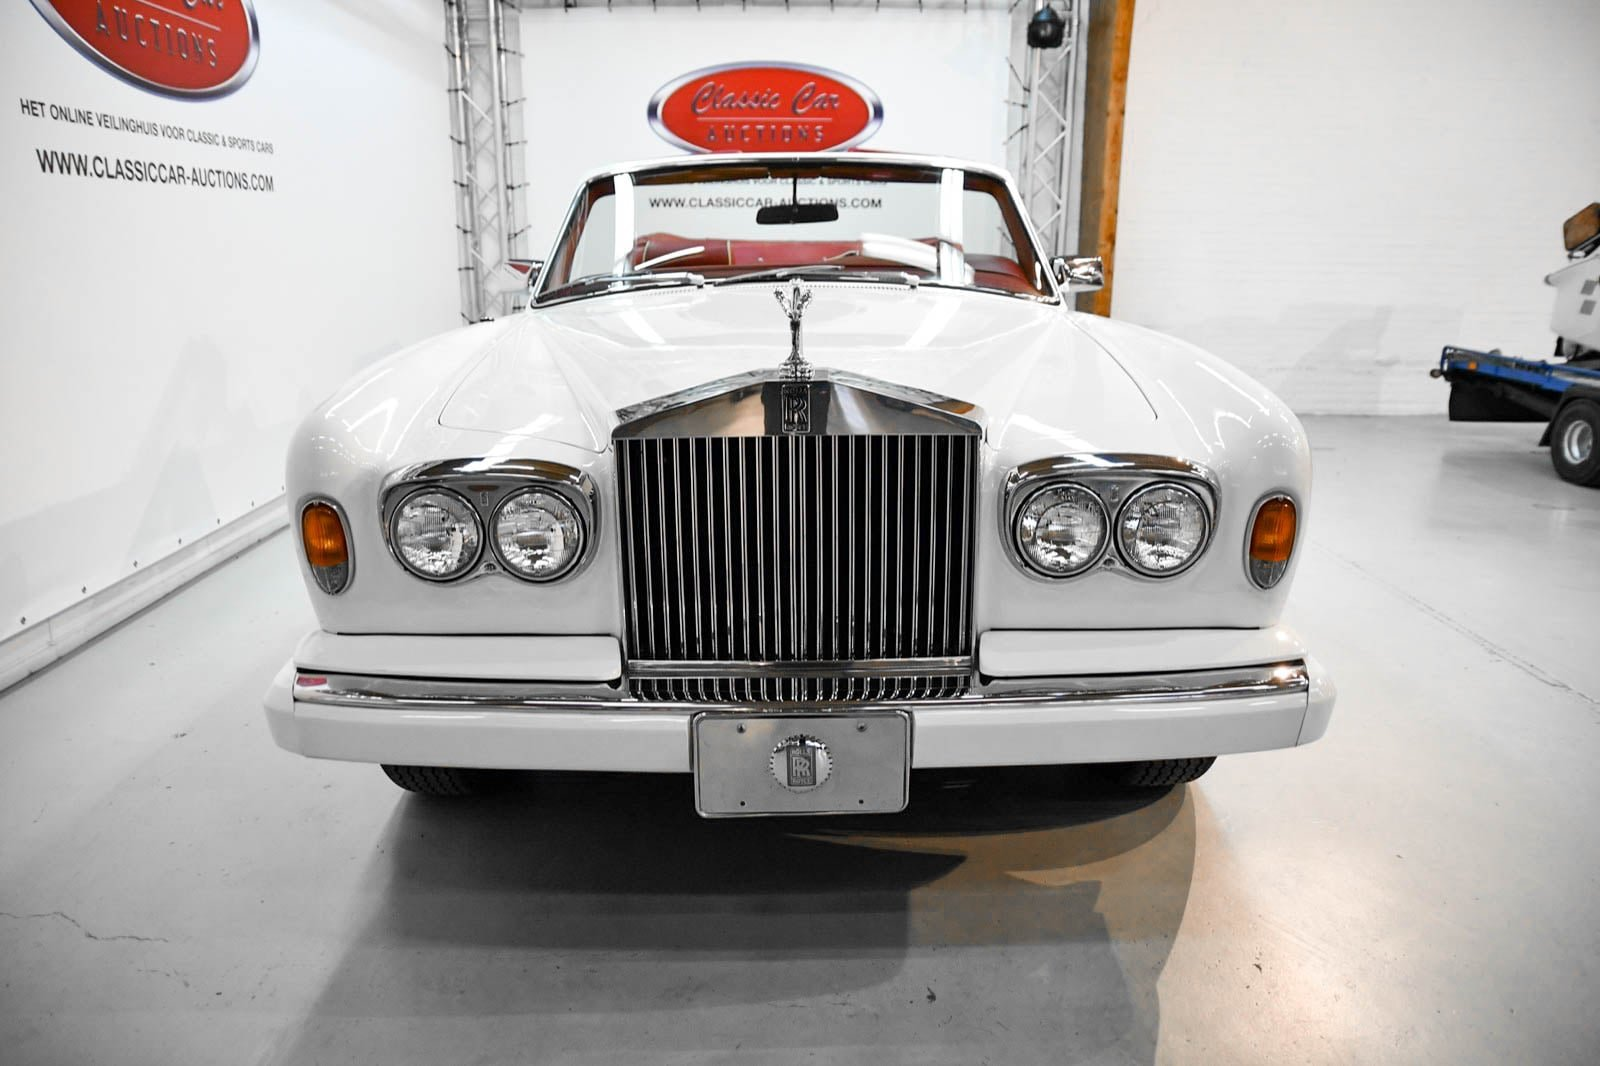 Rolls-Royce Corniche Convertible 1984 For Sale by Auction (picture 2 of 6)